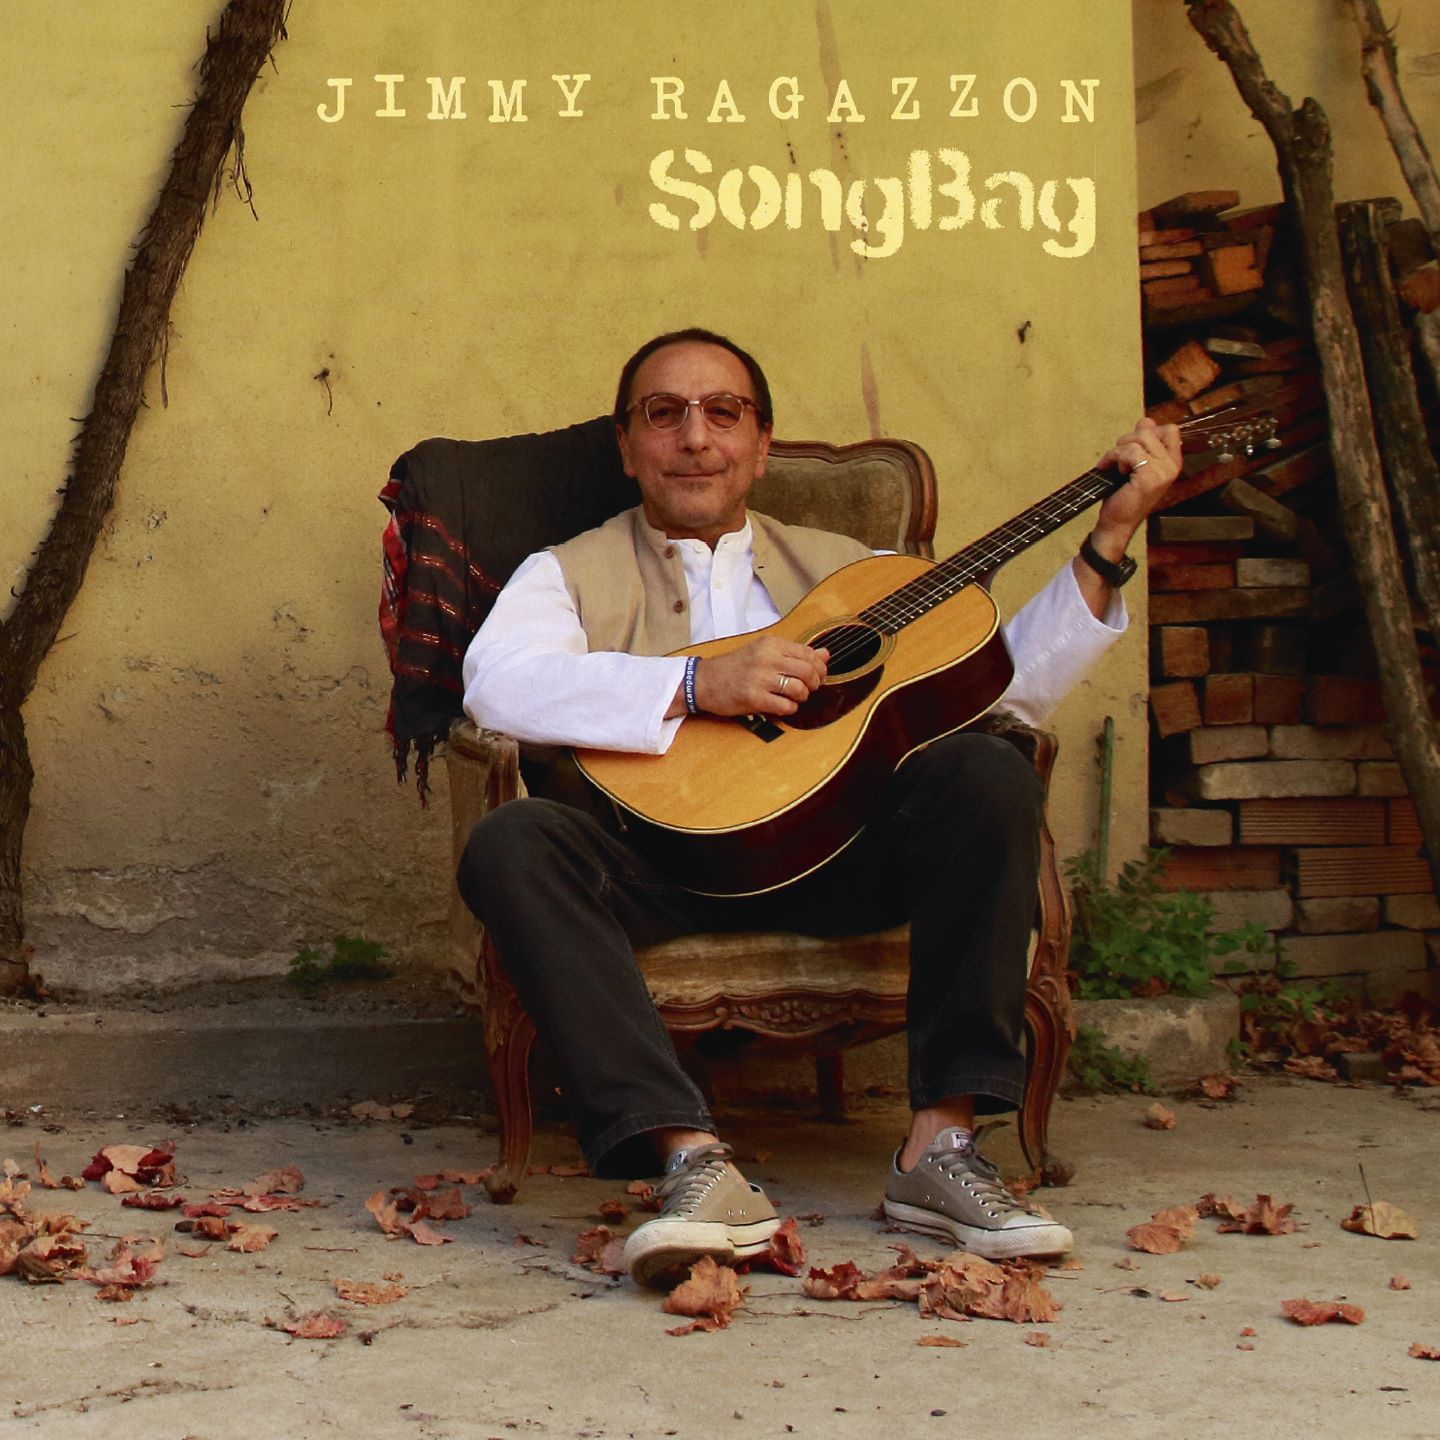 Jimmy Ragazzon SongBag